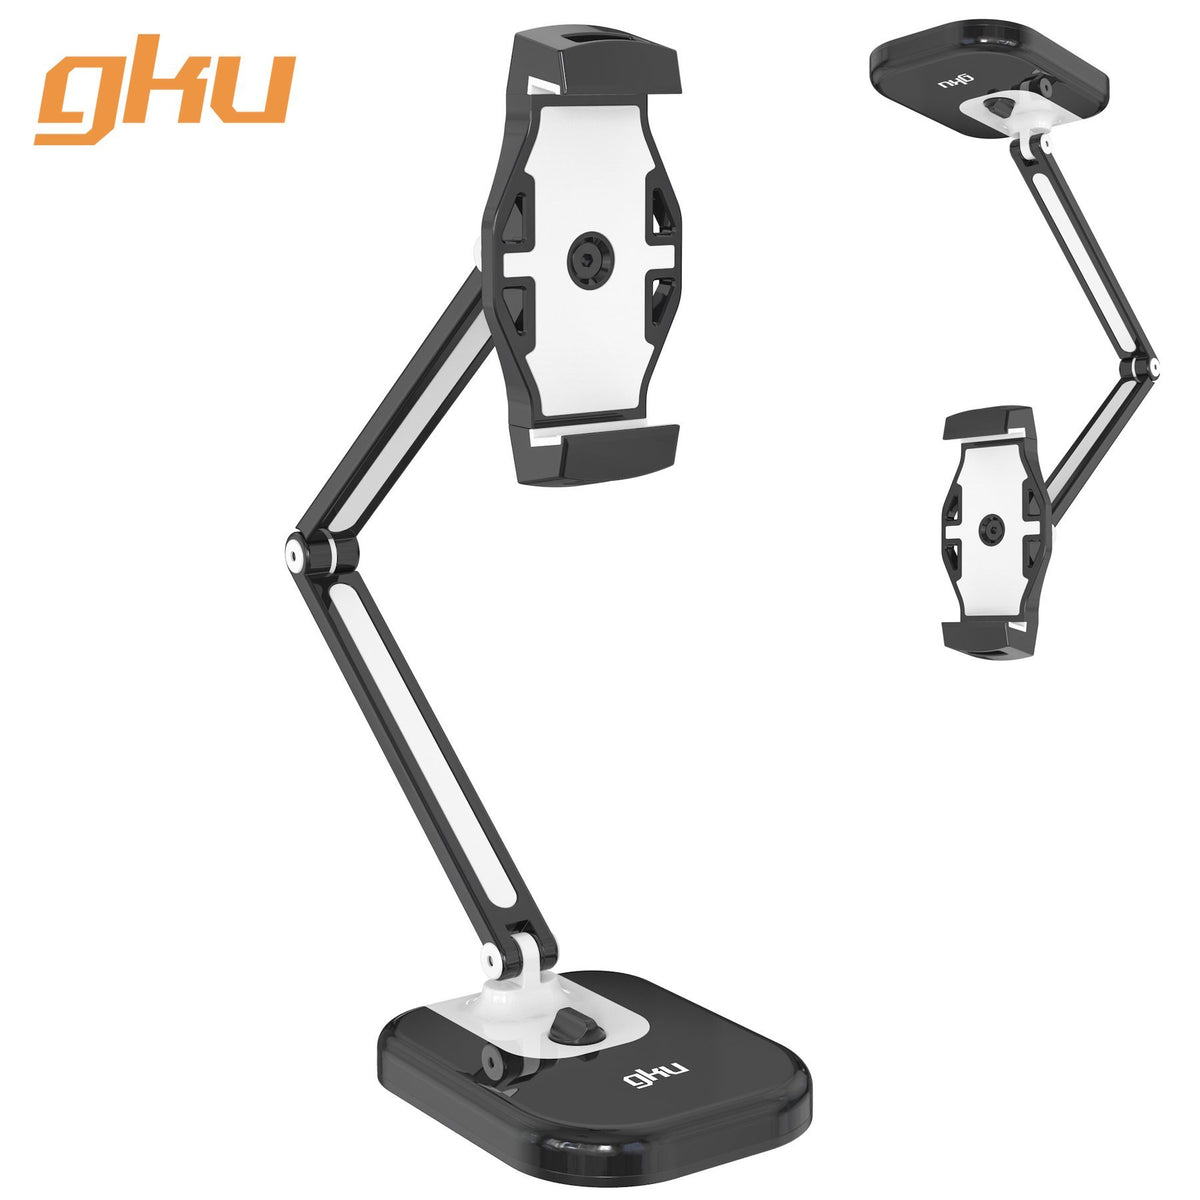 gku™ Phone PAD Tablet Mount Holder Roof Wall Holder